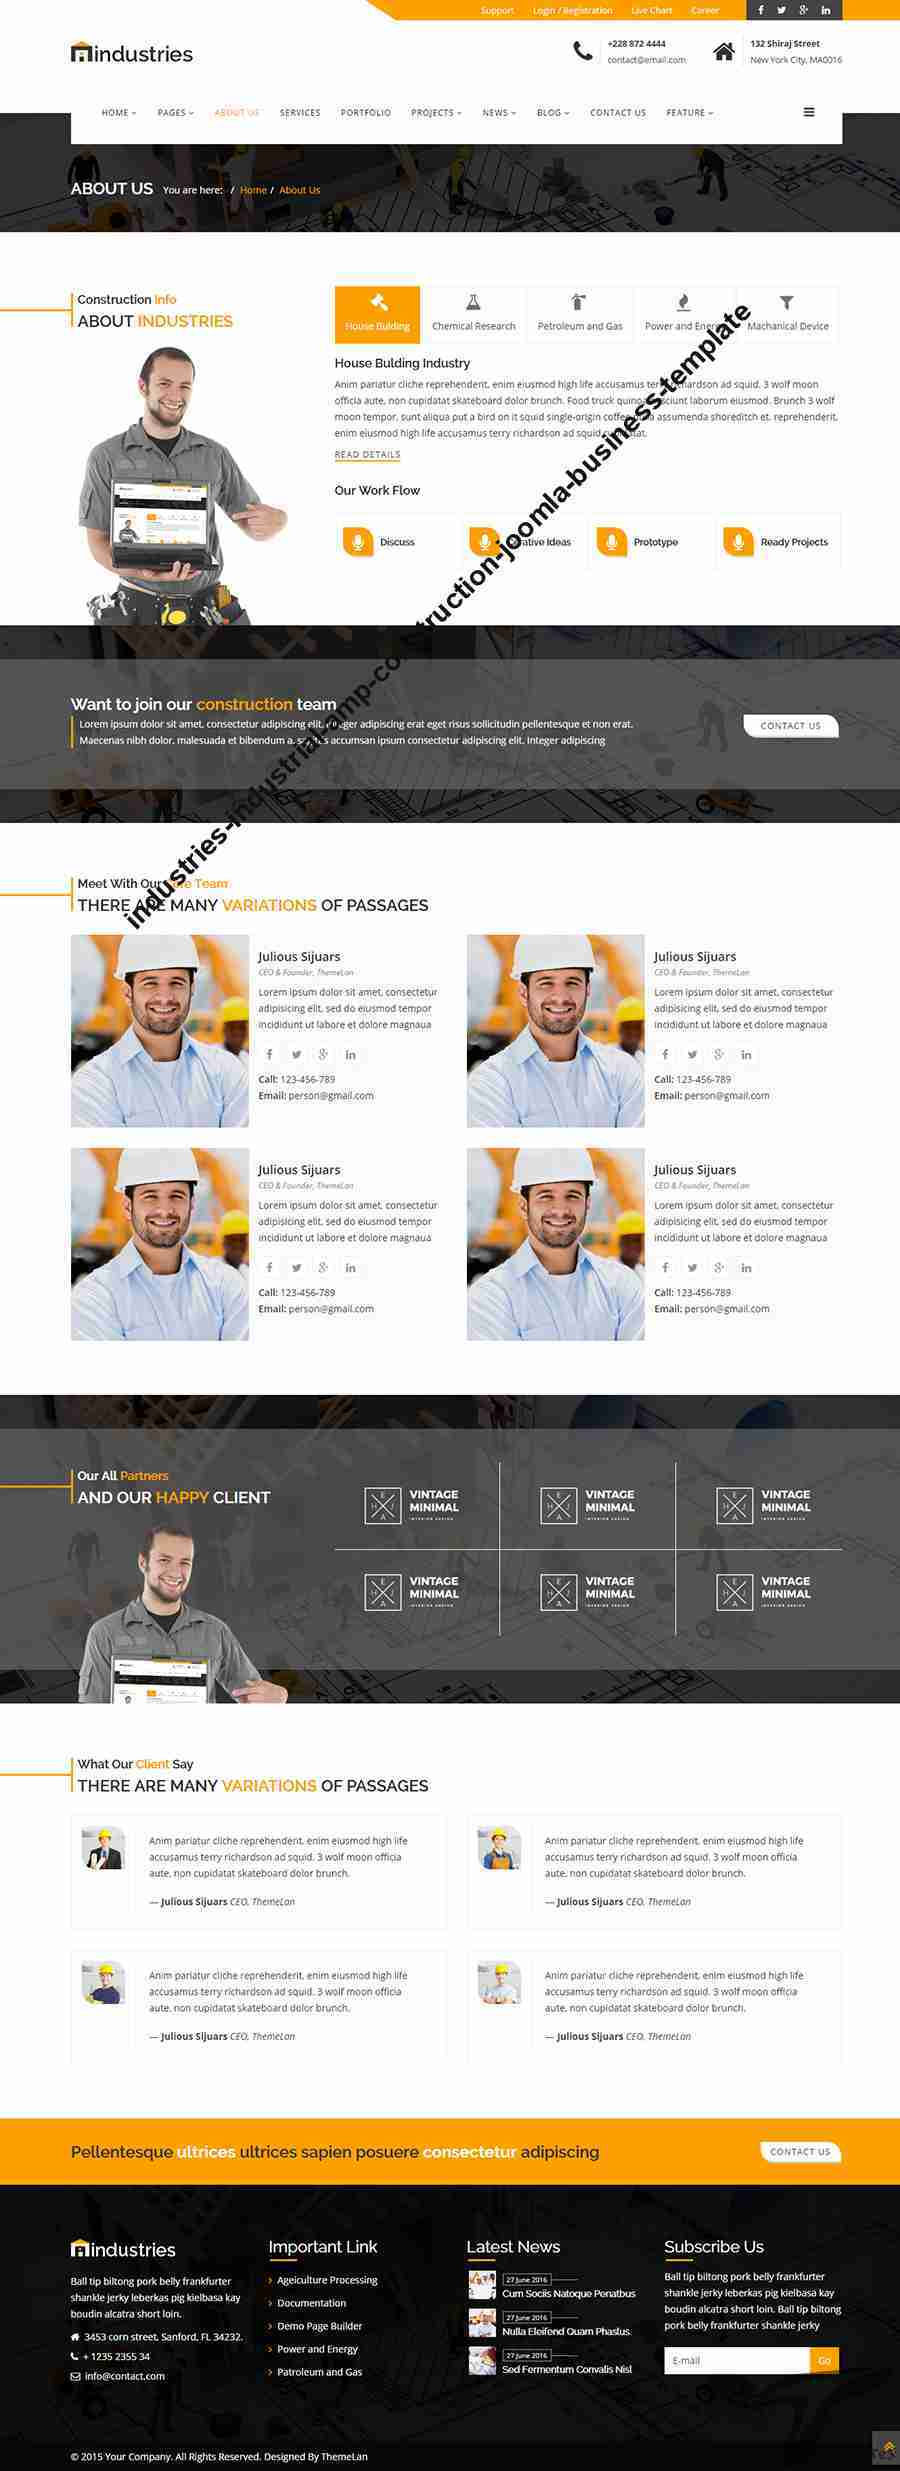 https://images.besthemes.com/images/h1_industries-industrial-amp-construction-joomla-business-template4-_-195277563/04_about.png